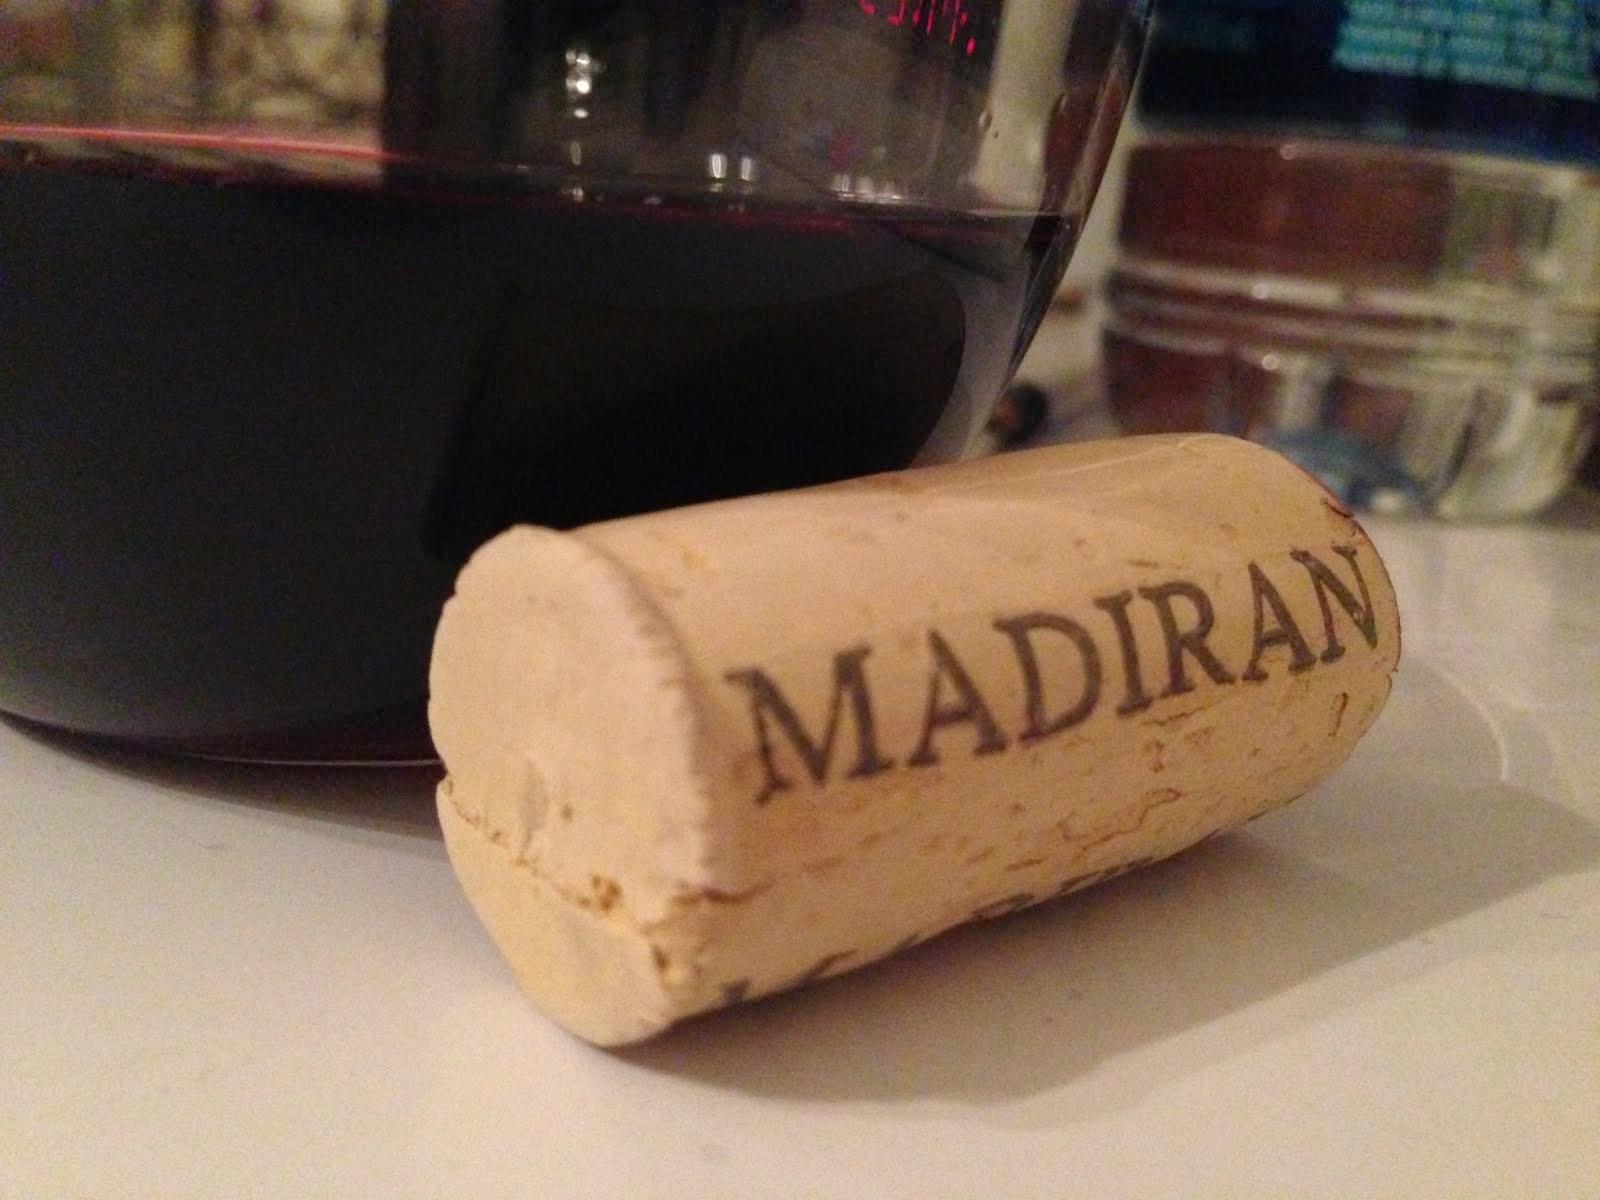 MADIRAN The Wine Bar